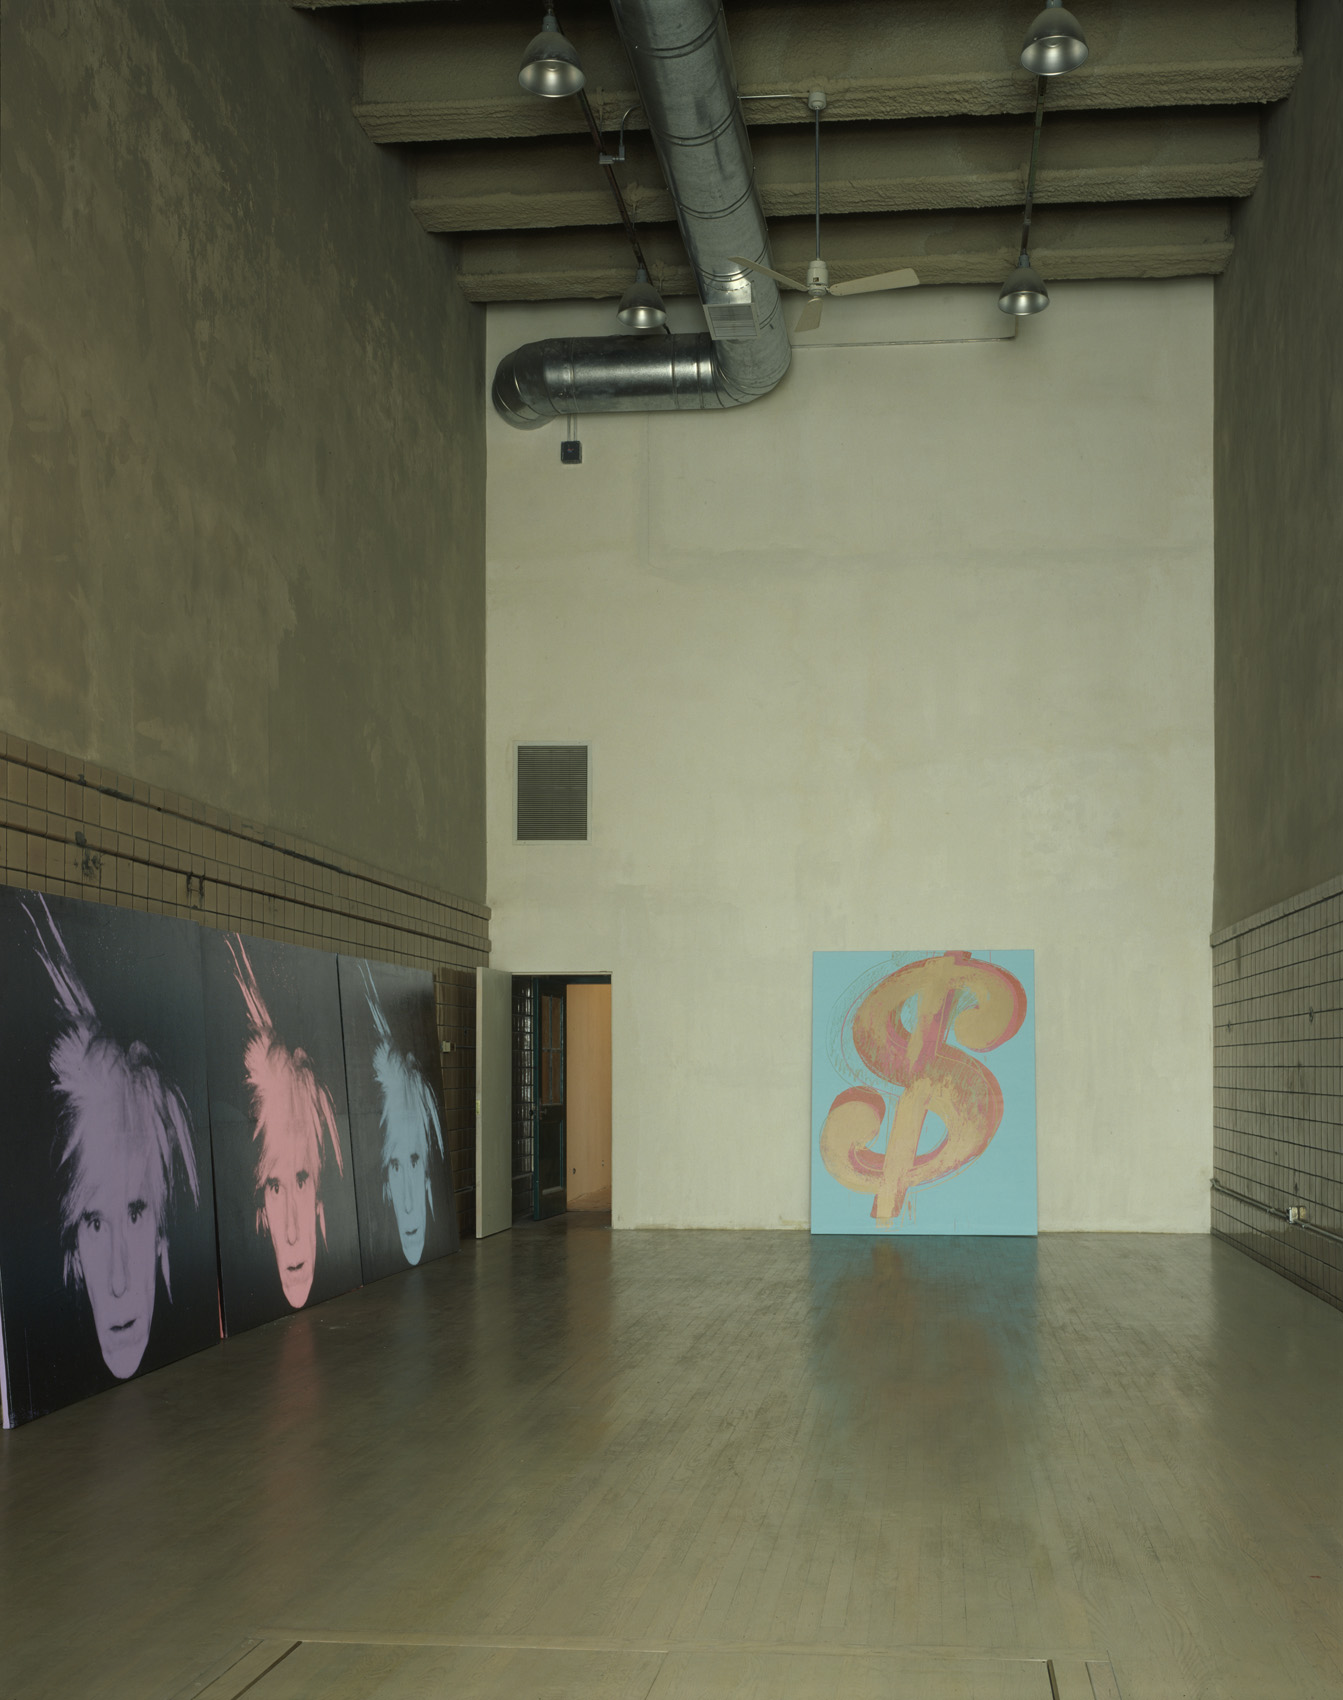 Andy Warhol Factory